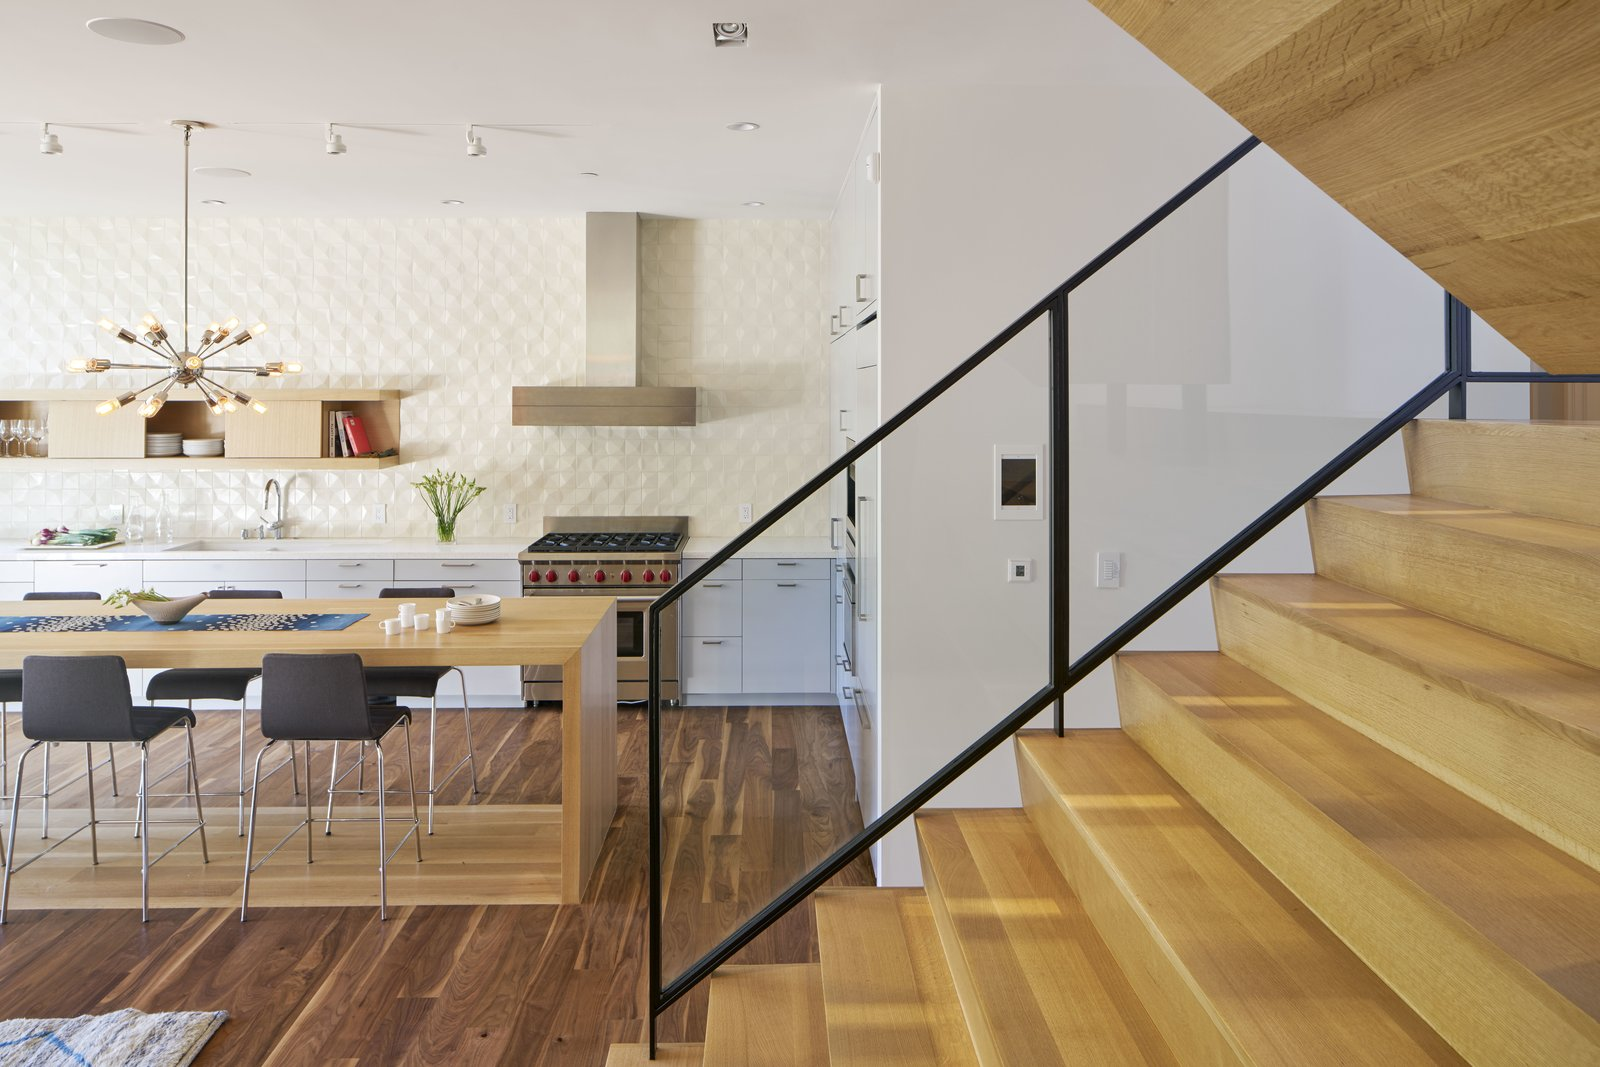 Dining Room, Track Lighting, Dark Hardwood Floor, Bar, Pendant Lighting, and Chair  29th Street Residence by Schwartz and Architecture